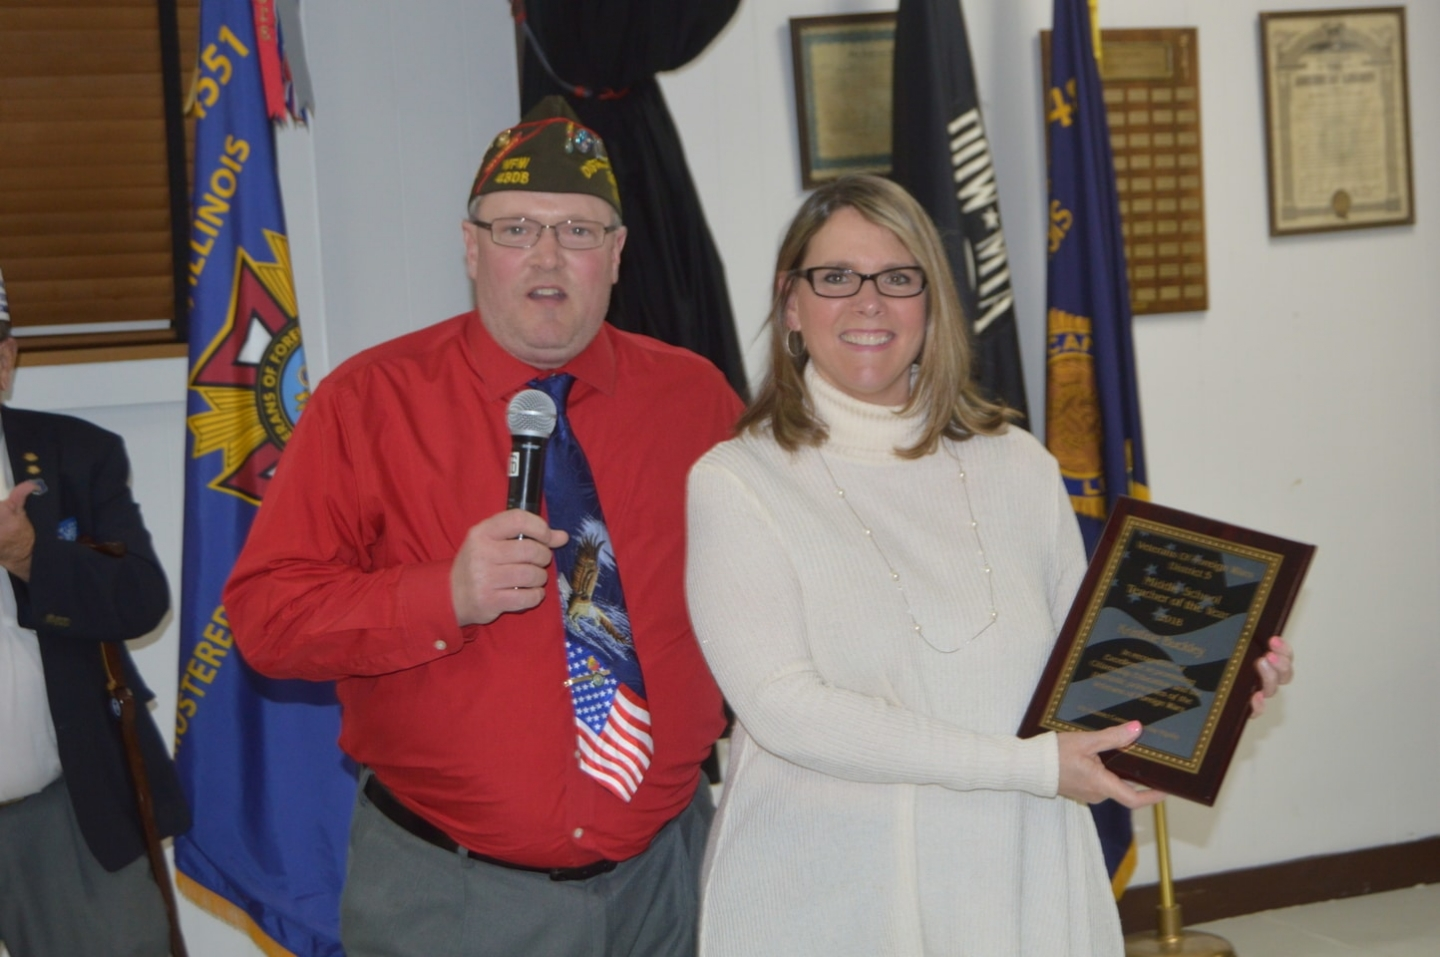 St Gilbert Catholic School Teacher Kristine Buckley, selected as VFW Teacher Middle School Teacher of the Year. 